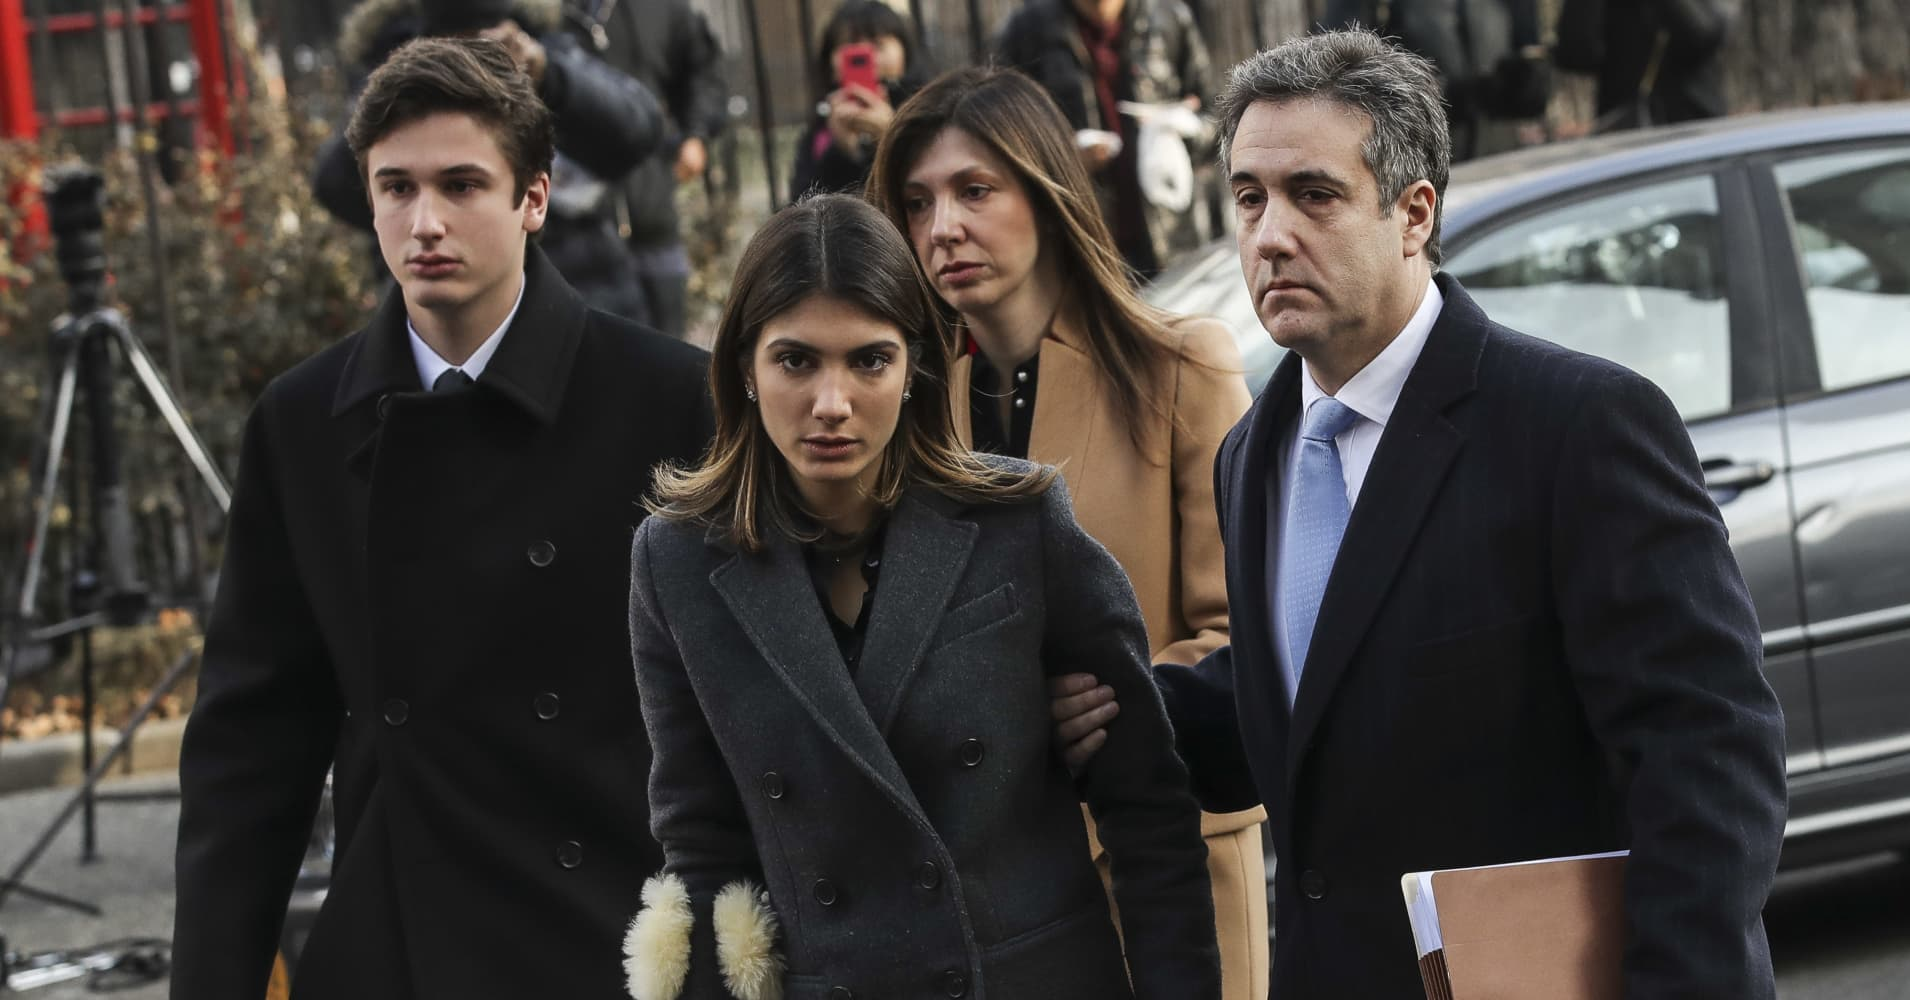 Michael Cohen postpones plan to testify at Congress because of fear for his family's safety